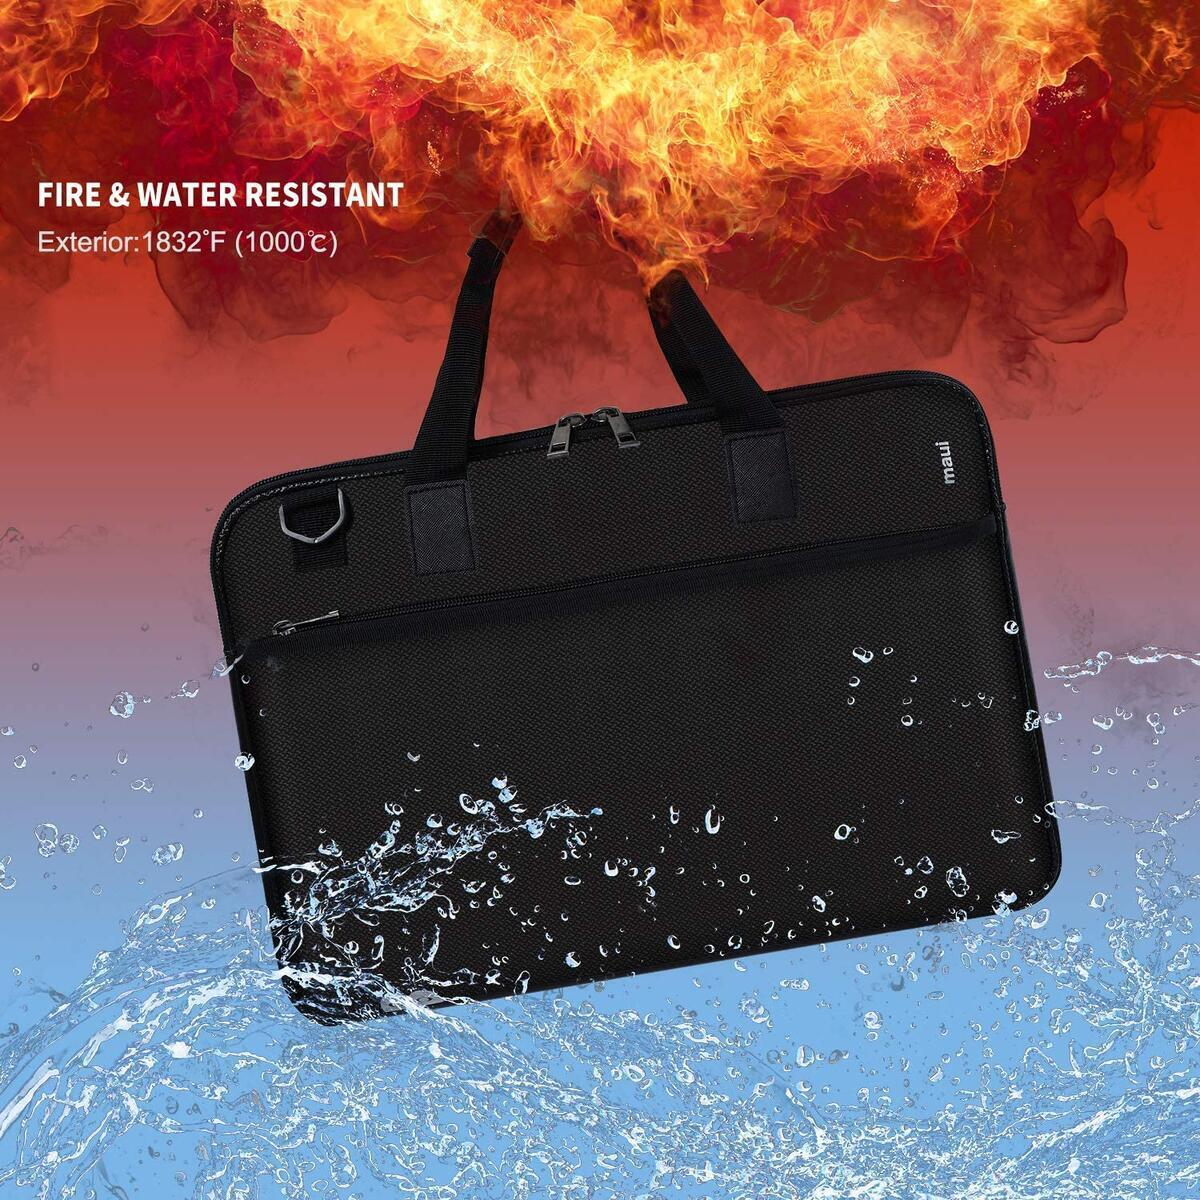 Fireproof Document Bag | Safe Storage 15 x 11 x 1.6 inches | Silicone Coated Non-Itchy Fiberglass Fire Resistant Bag for Laptop | Legal Document & Valuables